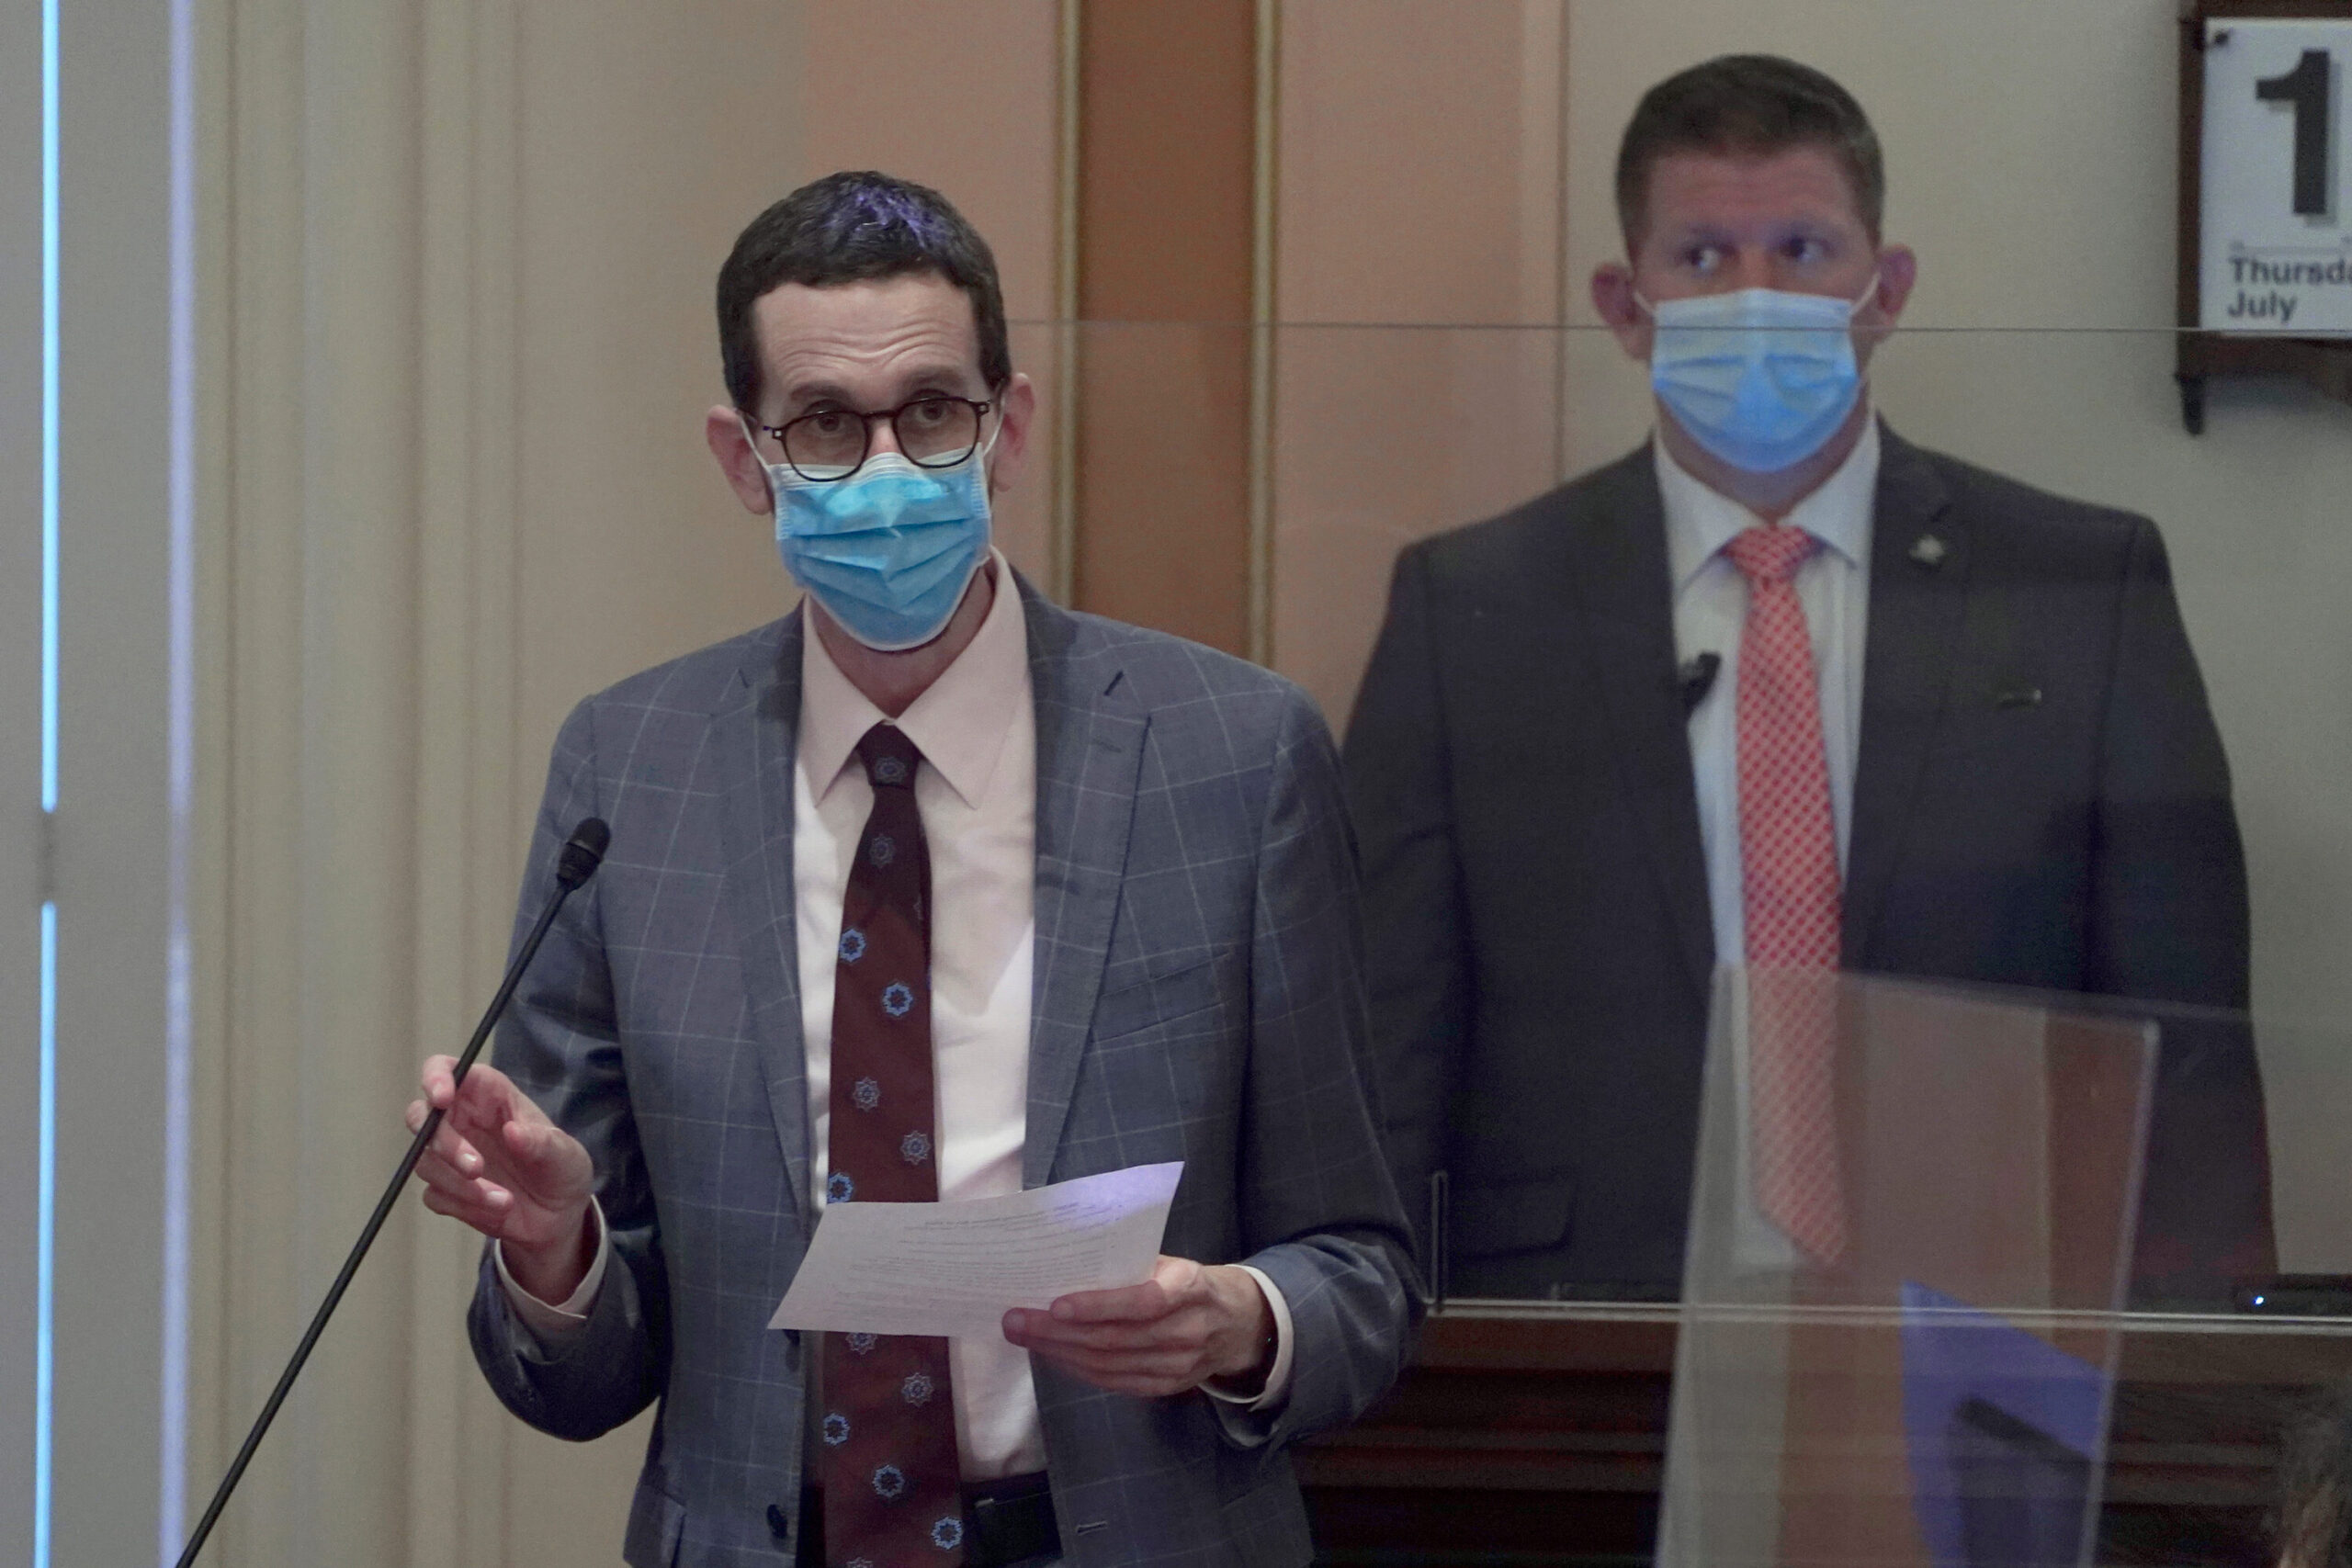 <i>Rich Pedroncelli/AP</i><br/>California State Sen. Scott Wiener criticized a district appeals court's decision to overturn part of an anti-discrimination bill for LGBTQ nursing home residents that prohibited staff from deliberately misgendering transgender residents.